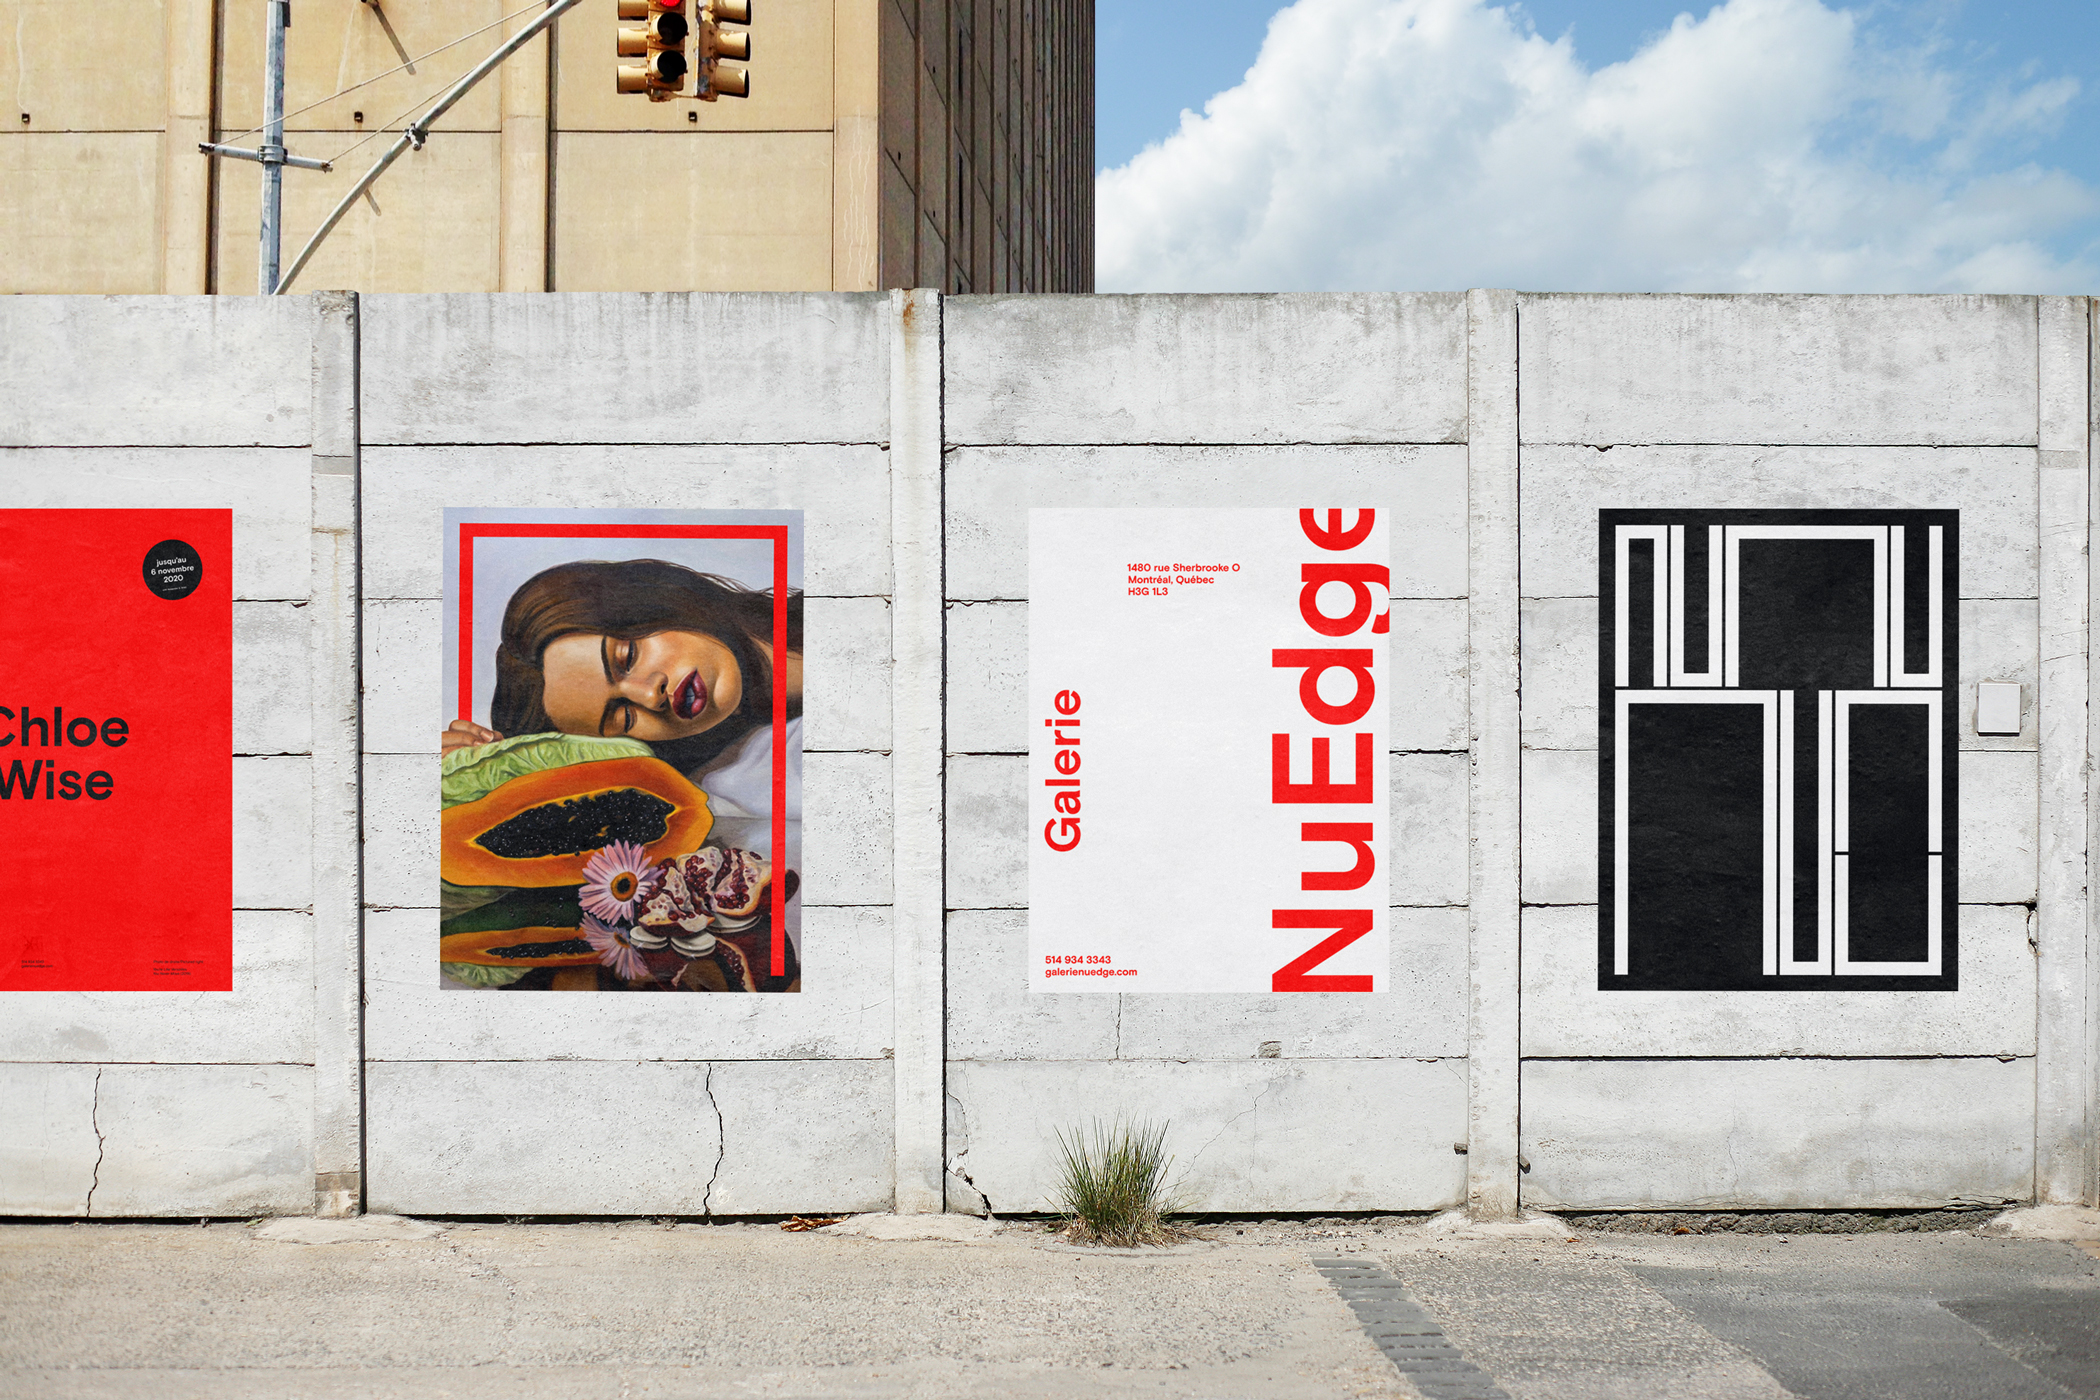 Wall outdoors showcasing first series of posters (red) for Galerie NuEdge rebranding